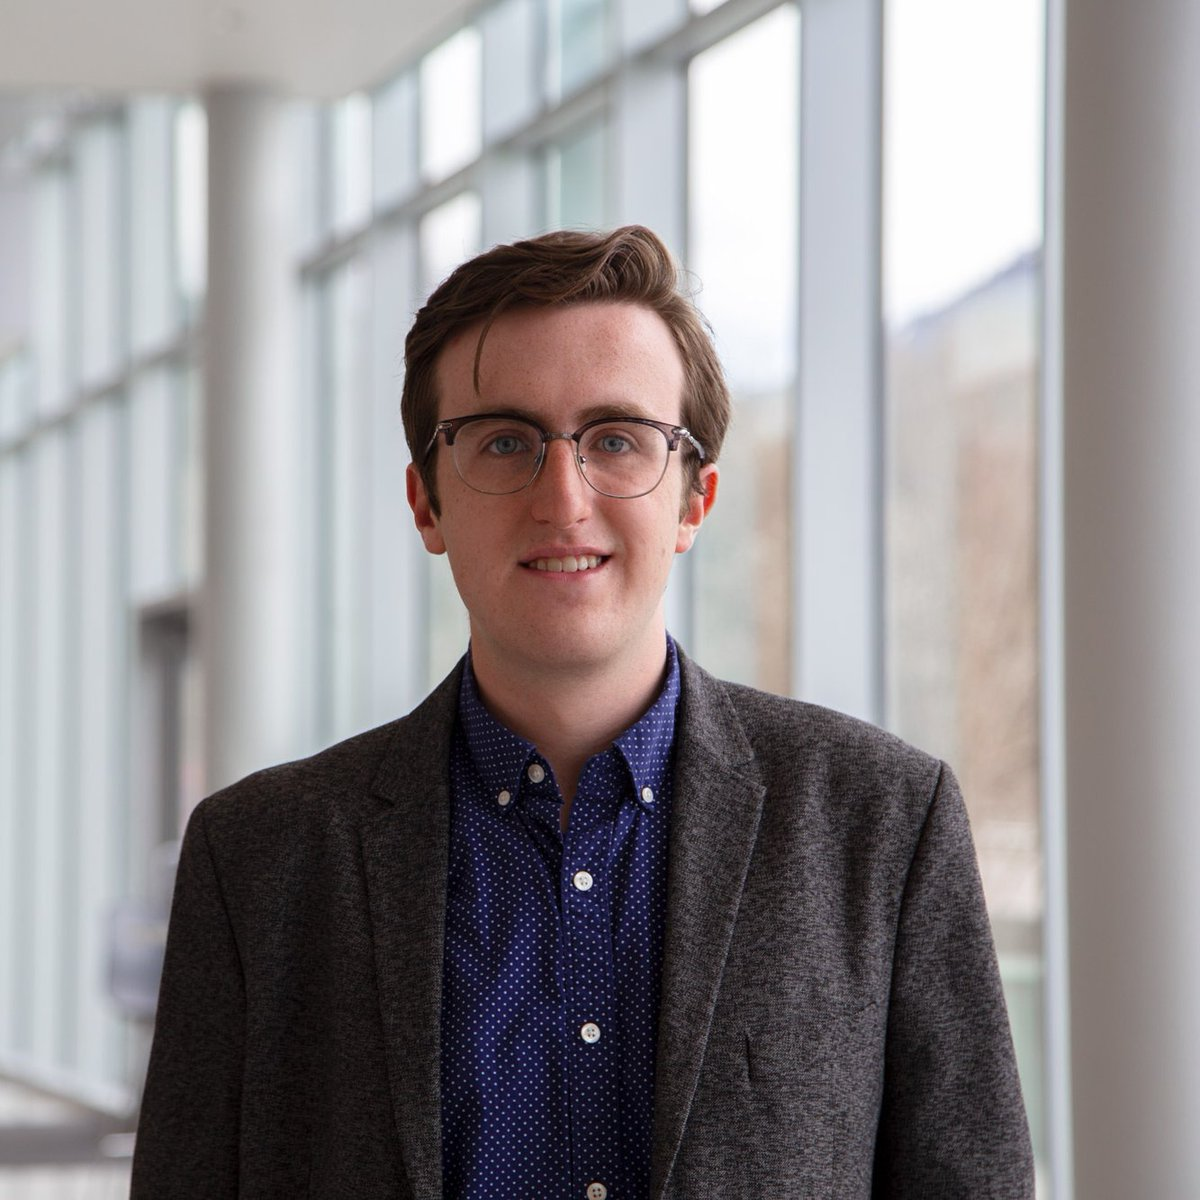 Meet Jackson, an electrical engineering master's student at USU! Jackson has had plenty of experience working in electricity — from internships to his work at @ASPIREerc  — and he hopes to use his skills to make a cleaner, greener world. #studentspotlight https://t.co/T3jW44MuWR https://t.co/VvVUUwOvfa